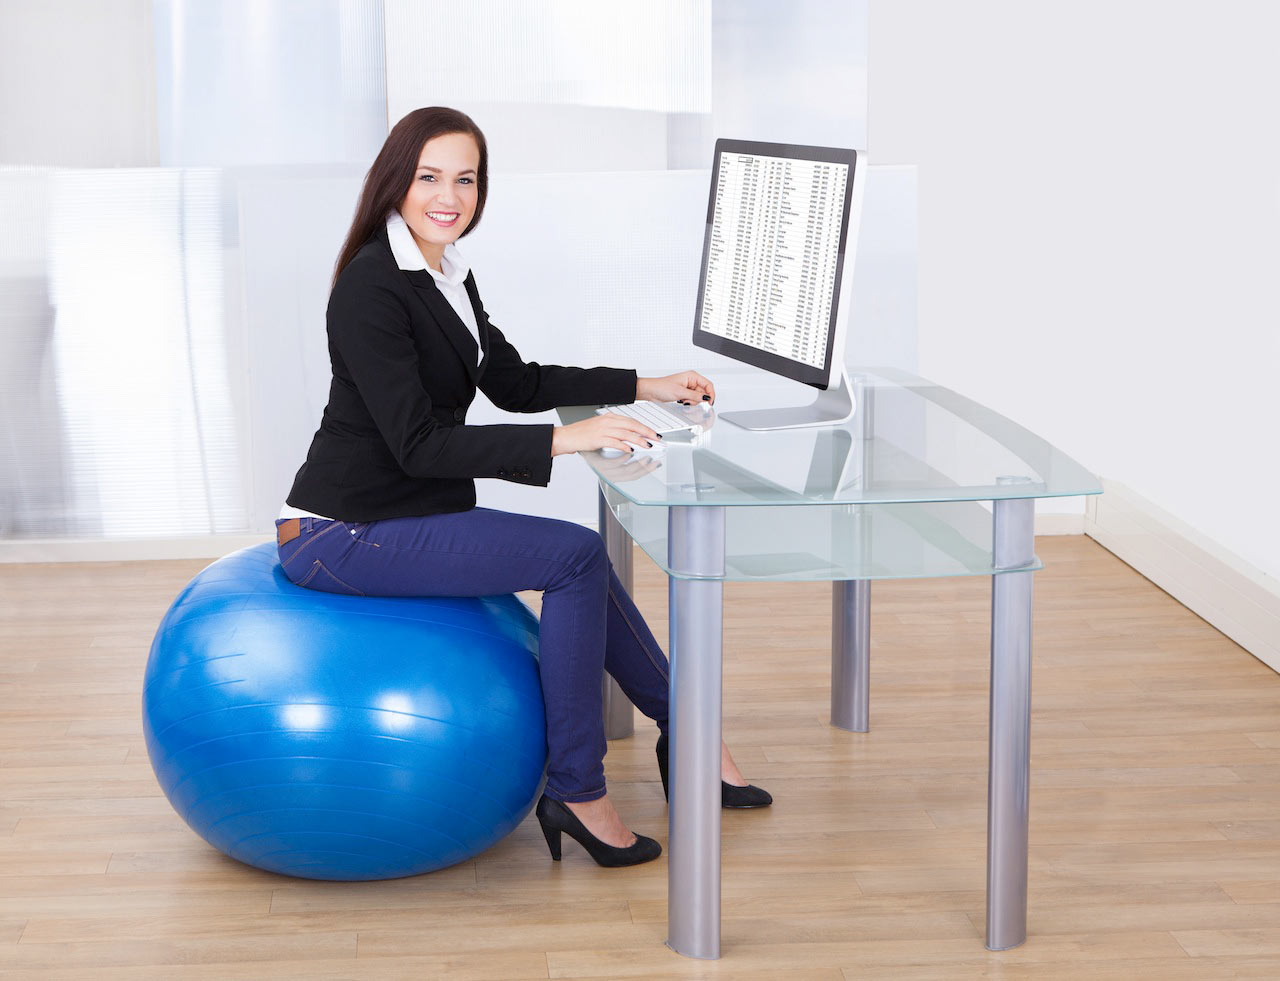 8 Desk Exercises To Boost Your Energy Before You Reach For